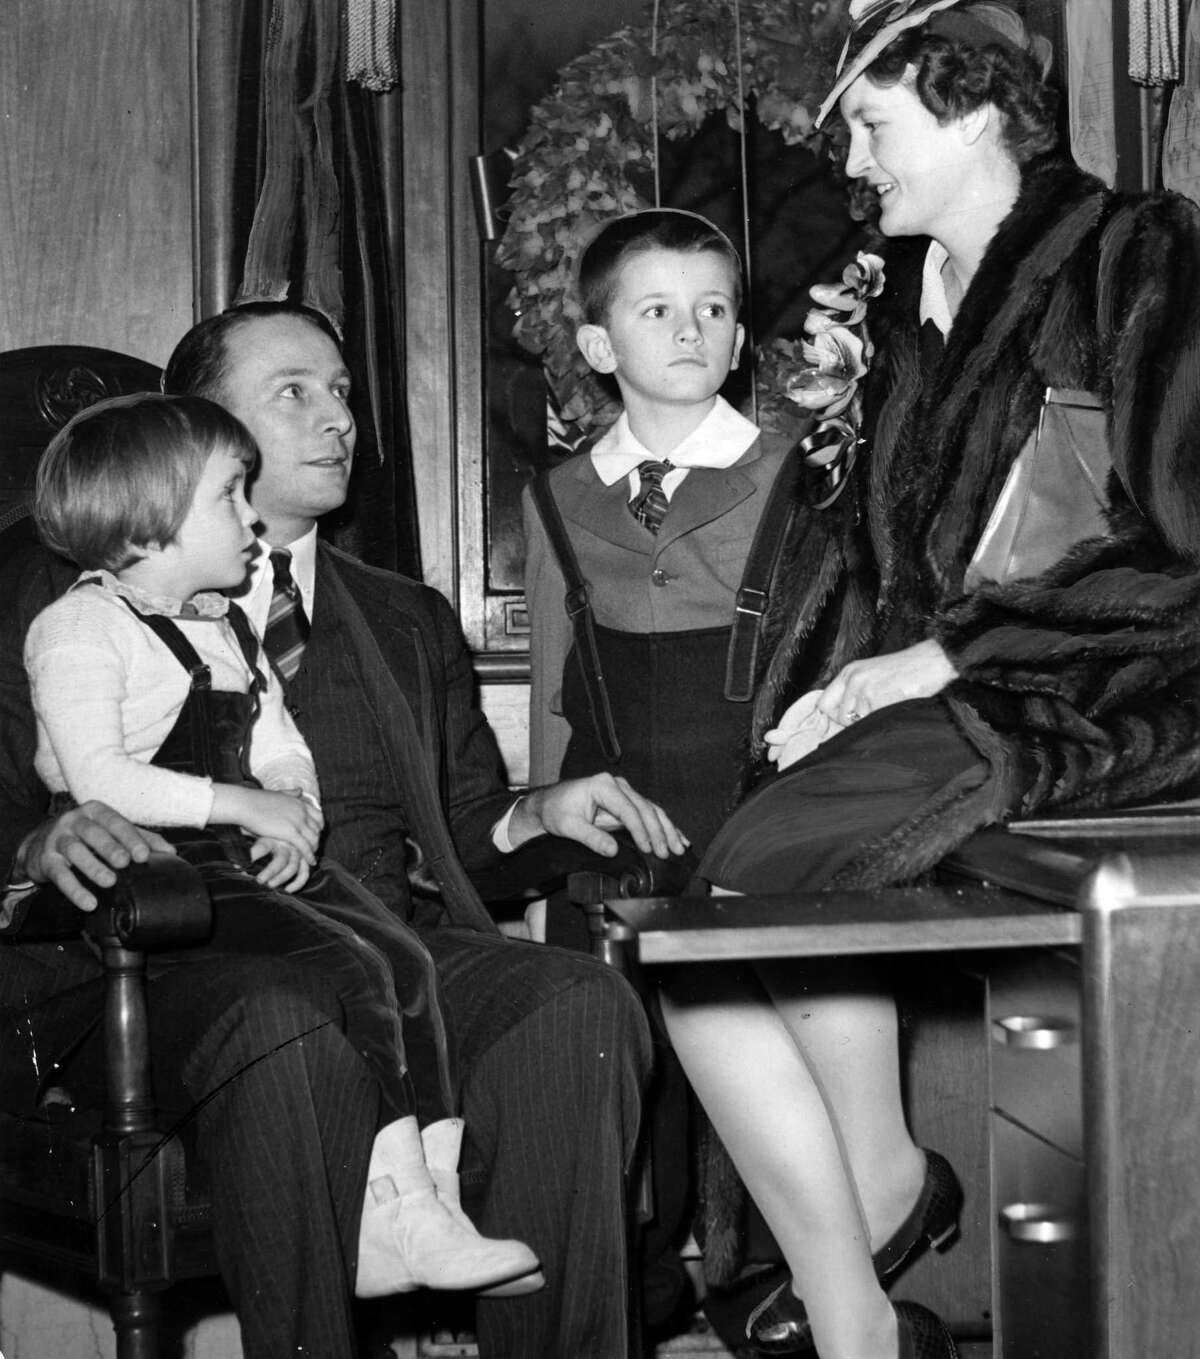 Mayor Erastus Corning II, left, poses with children, Bettina Corning Dudley, left, Erastus Corning III and wife Elizabeth Platt, right, Jan. 2, 1942, in Albany, N.Y. Historic 1940s. (Times Union archive)